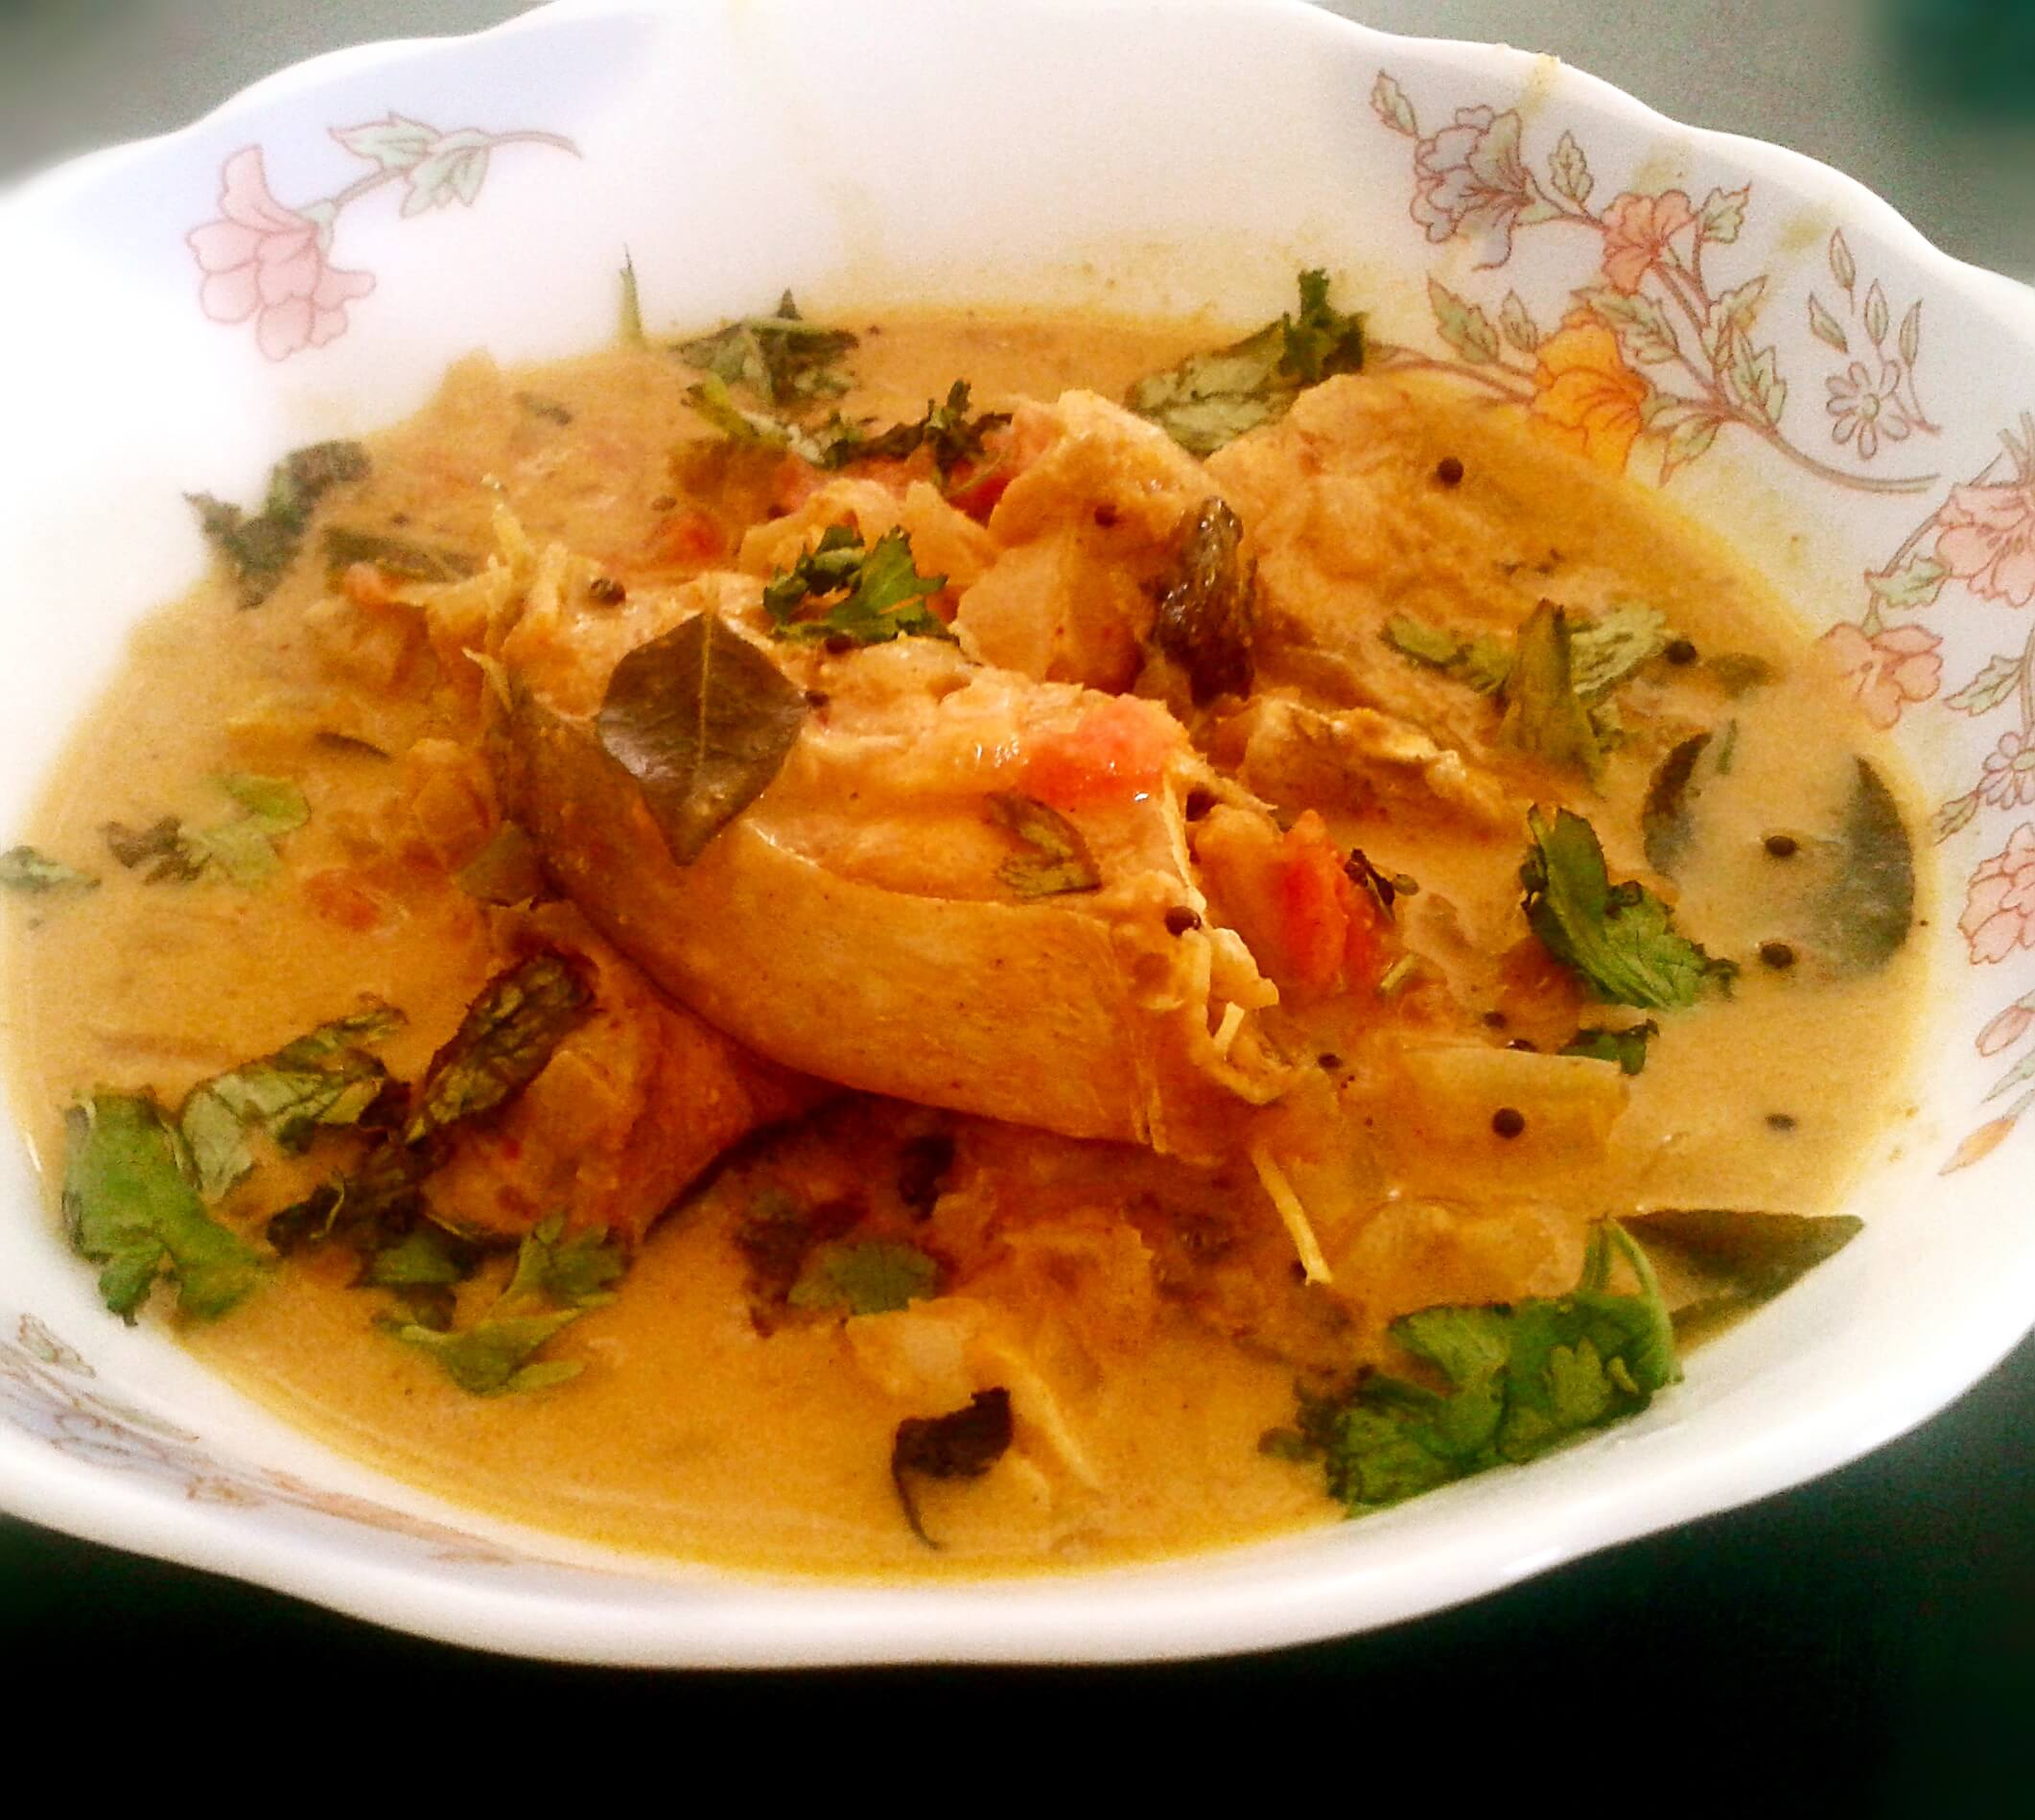 Coconut rawas curry recipe – Rawas (Indian salmon) in coconut gravy